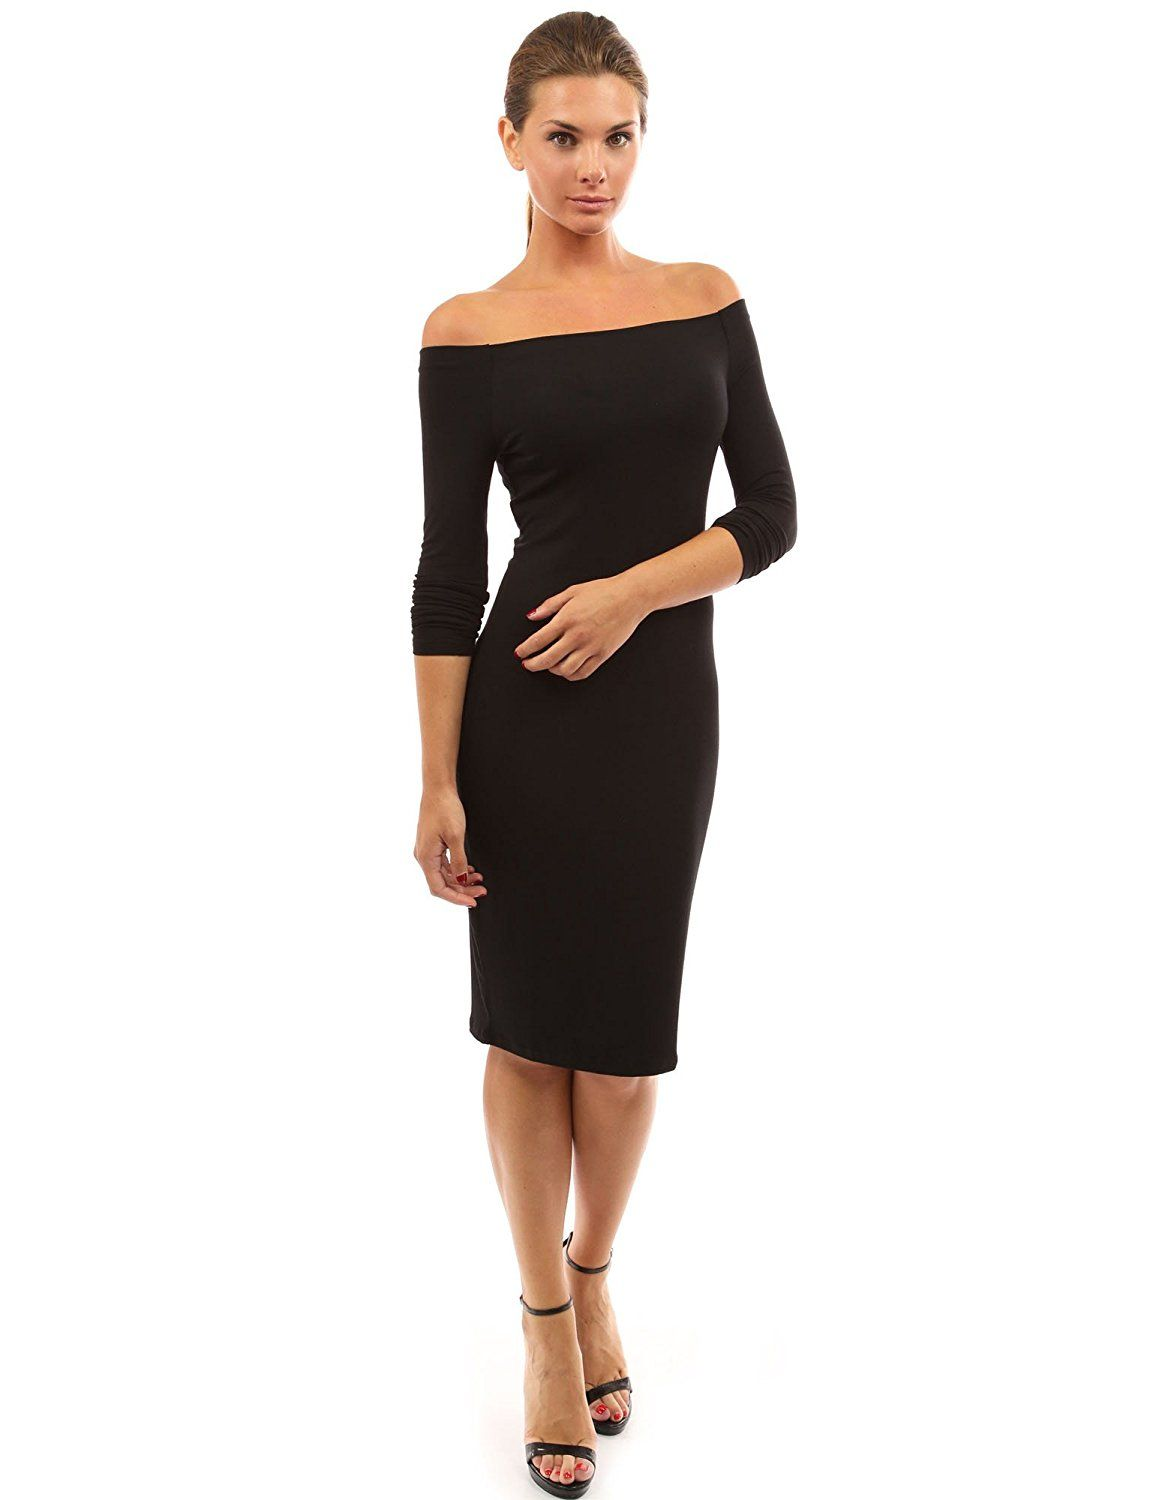 Amazon Com Pattyboutik Women 39 S Off Shoulder Long Sleeve Dress Clothing Long Sleeve Fitted Dress Black Long Sleeve Dress Classy Dress [ 1500 x 1159 Pixel ]